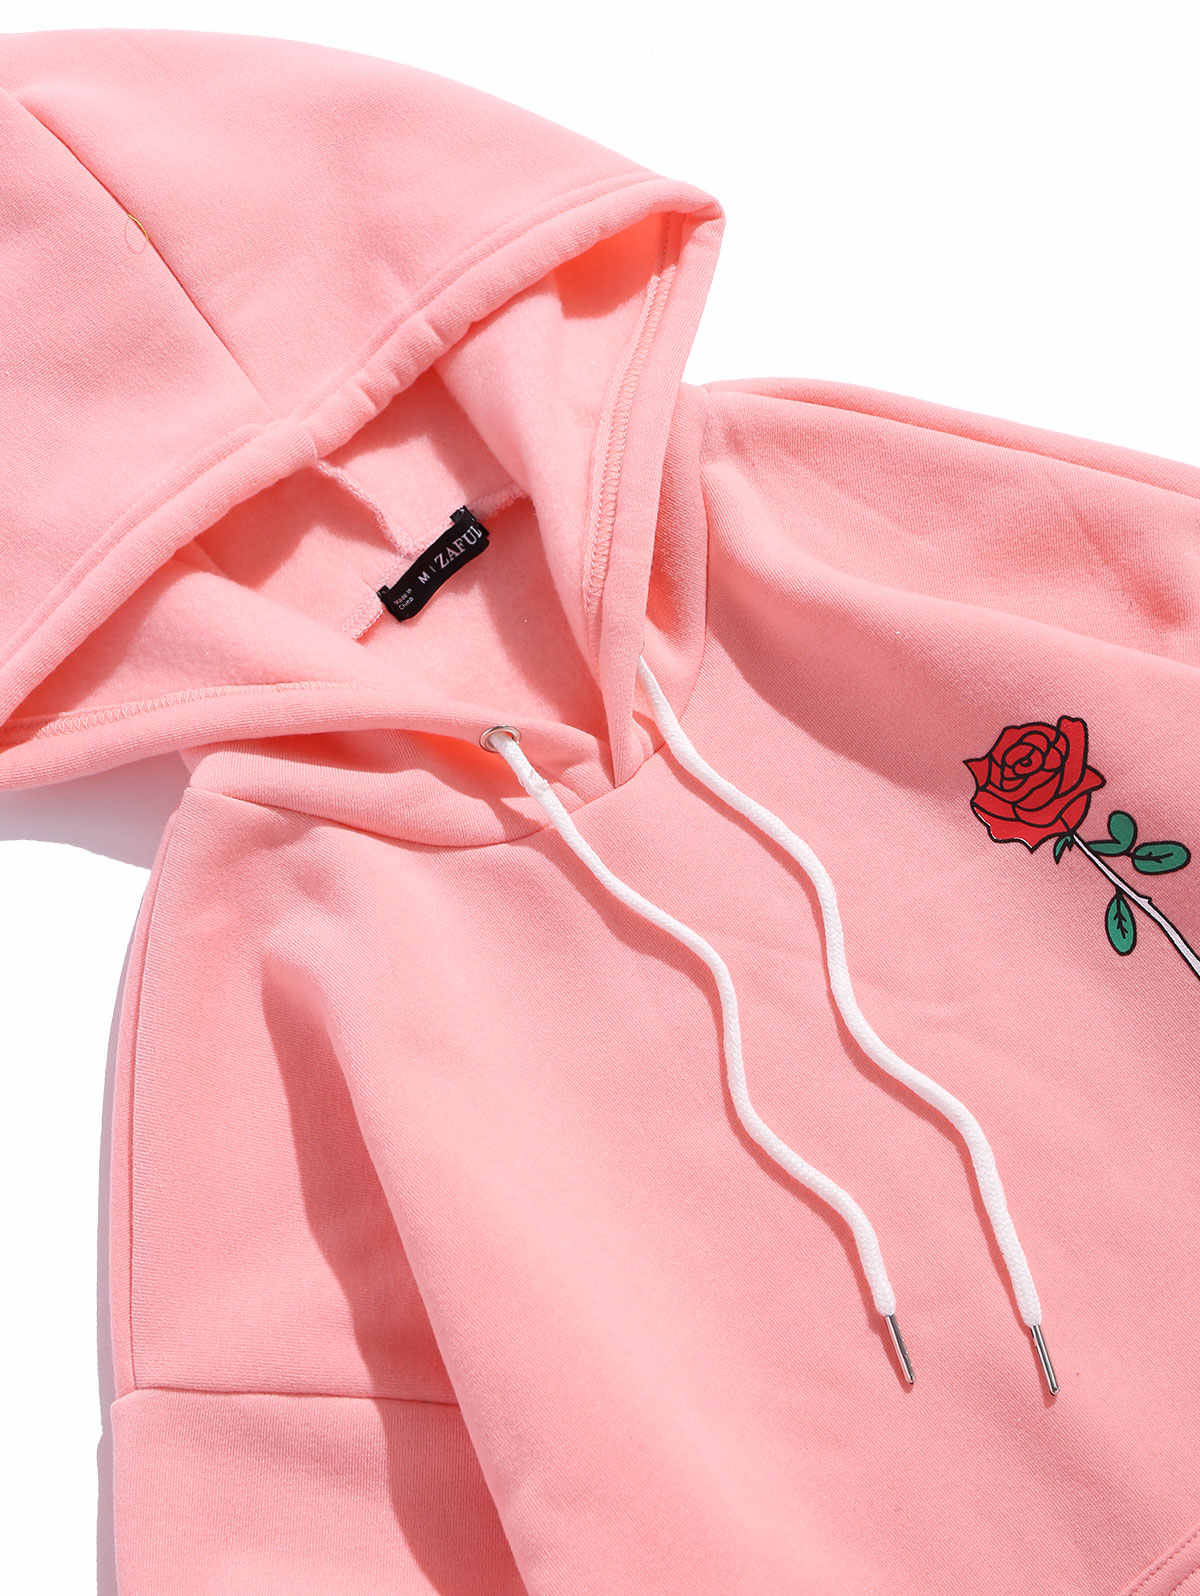 ZAFUL Rose Letter Graphic Fleece Pullover Hoodie Full Sleeves Flower Letter Printed Casual Sweatshirts Autumn Outdoor Wearing